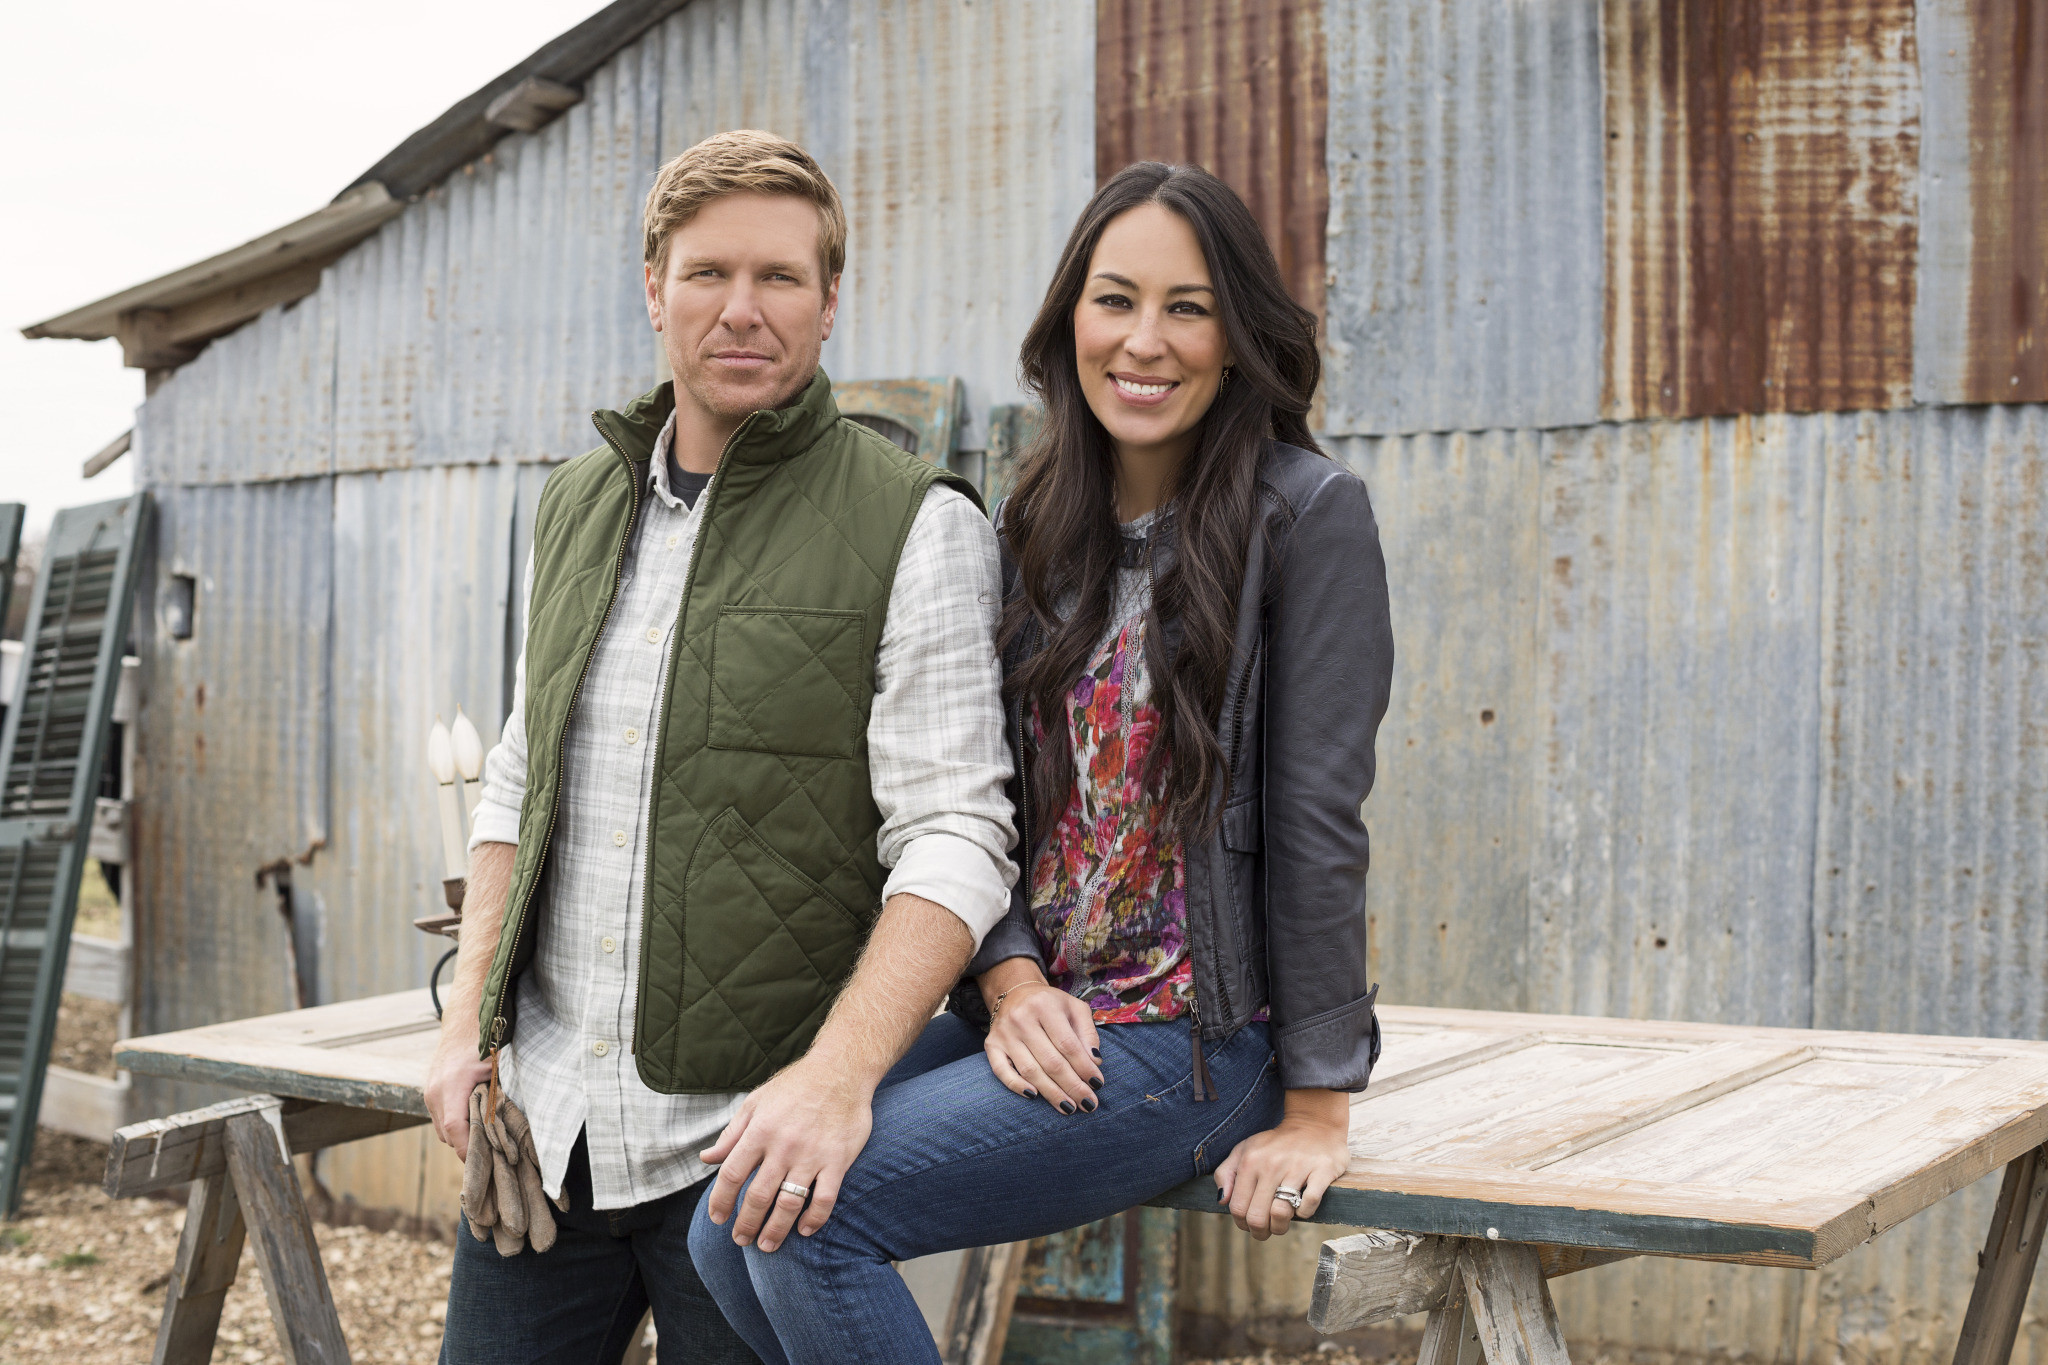 'Fixer Upper' Hosts Propose Useful Home Projects For 2015